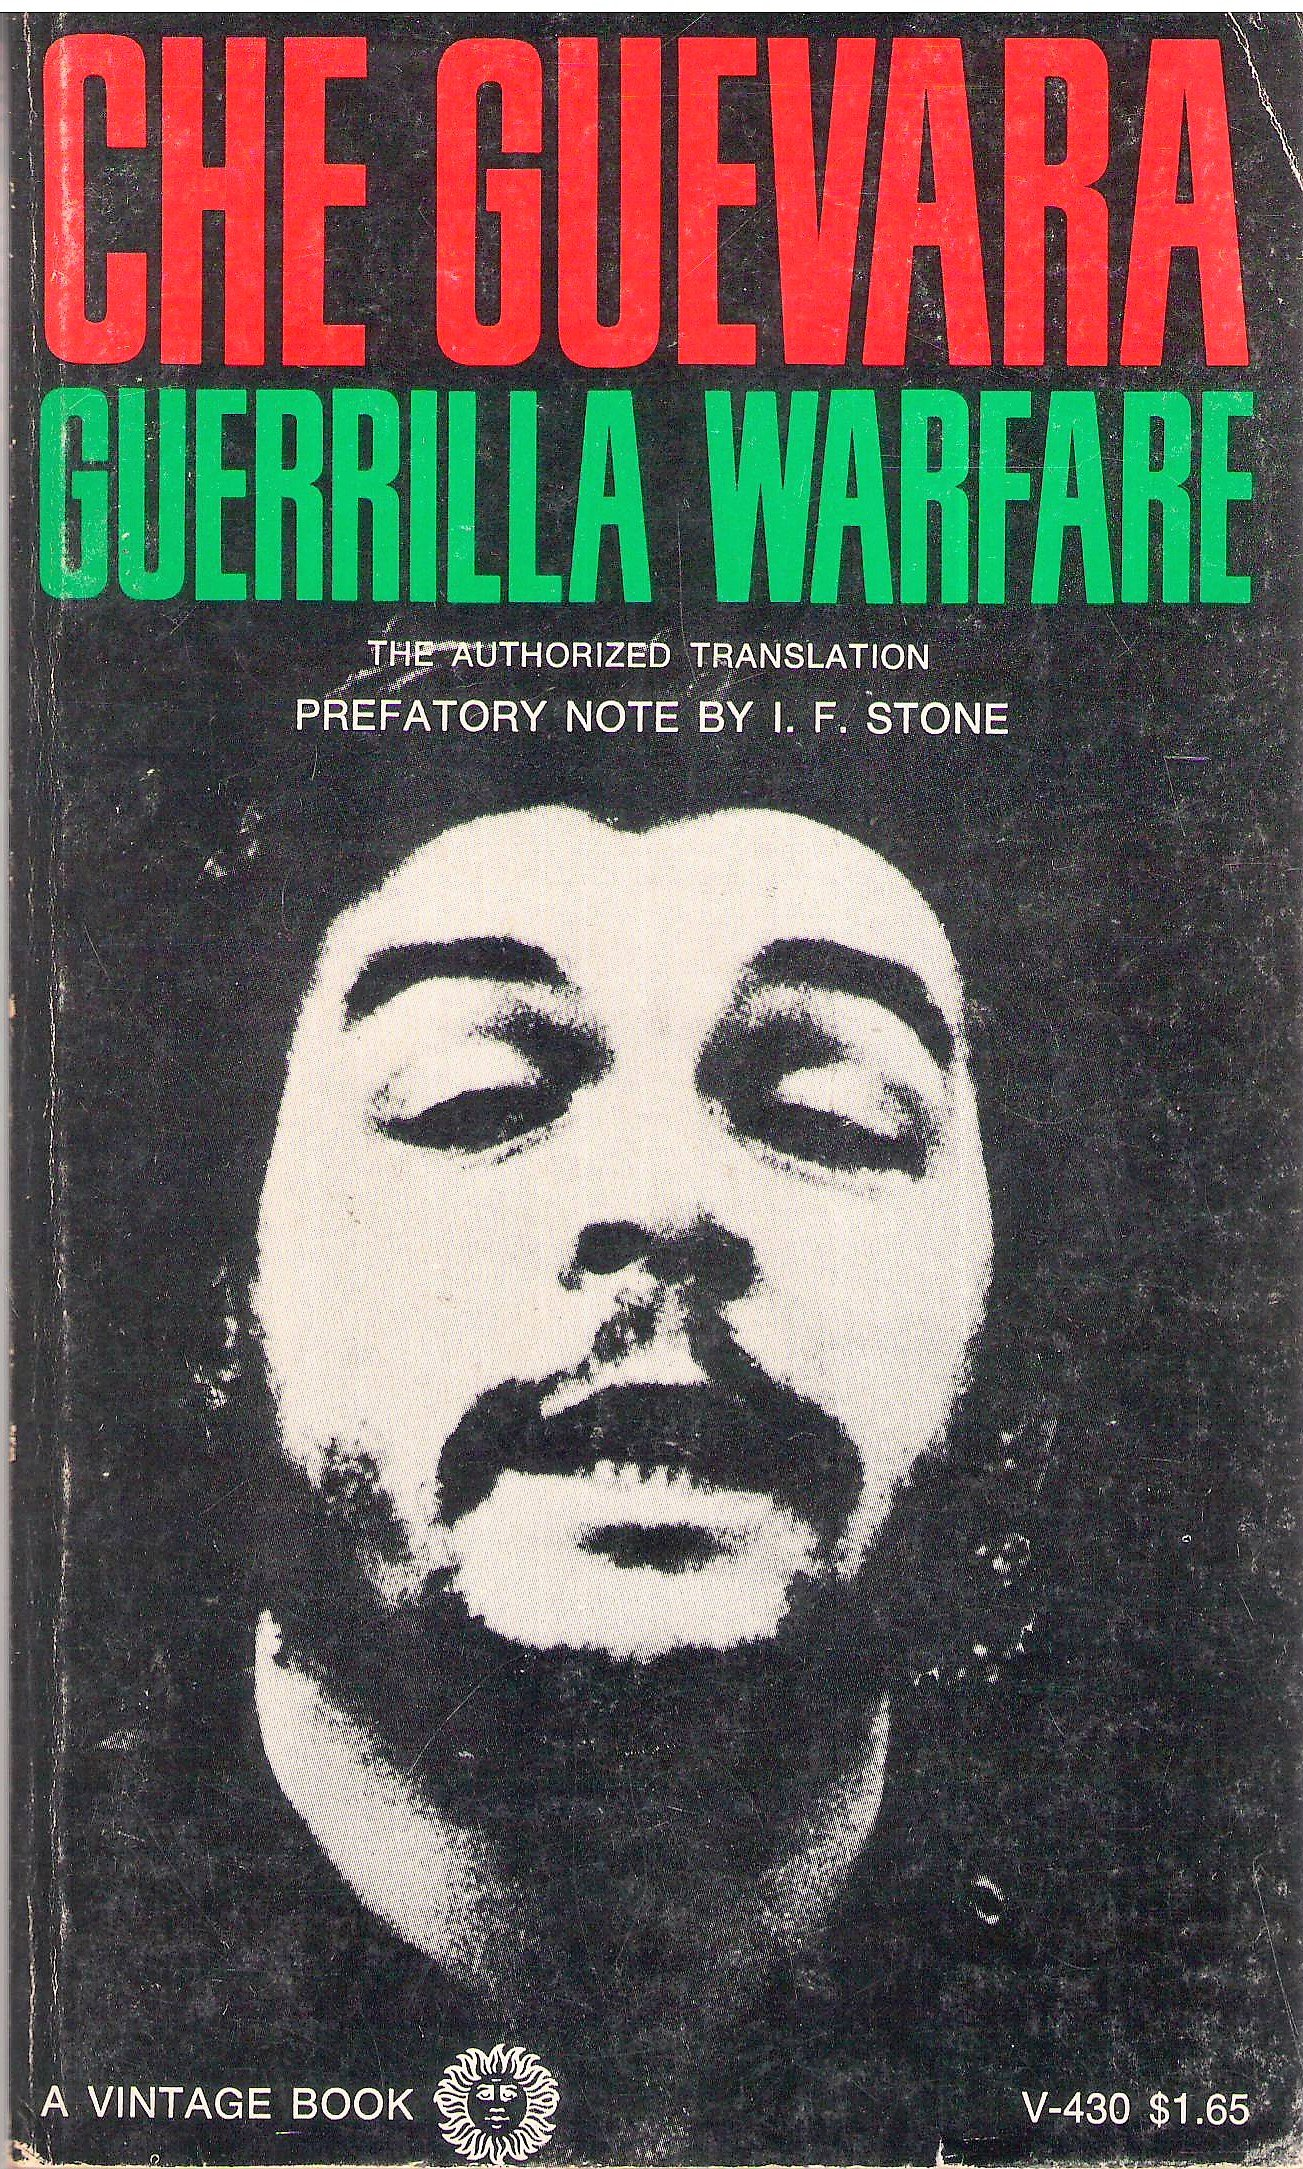 Guerrilla Warfare: the Authorized Translation, Che Guevara